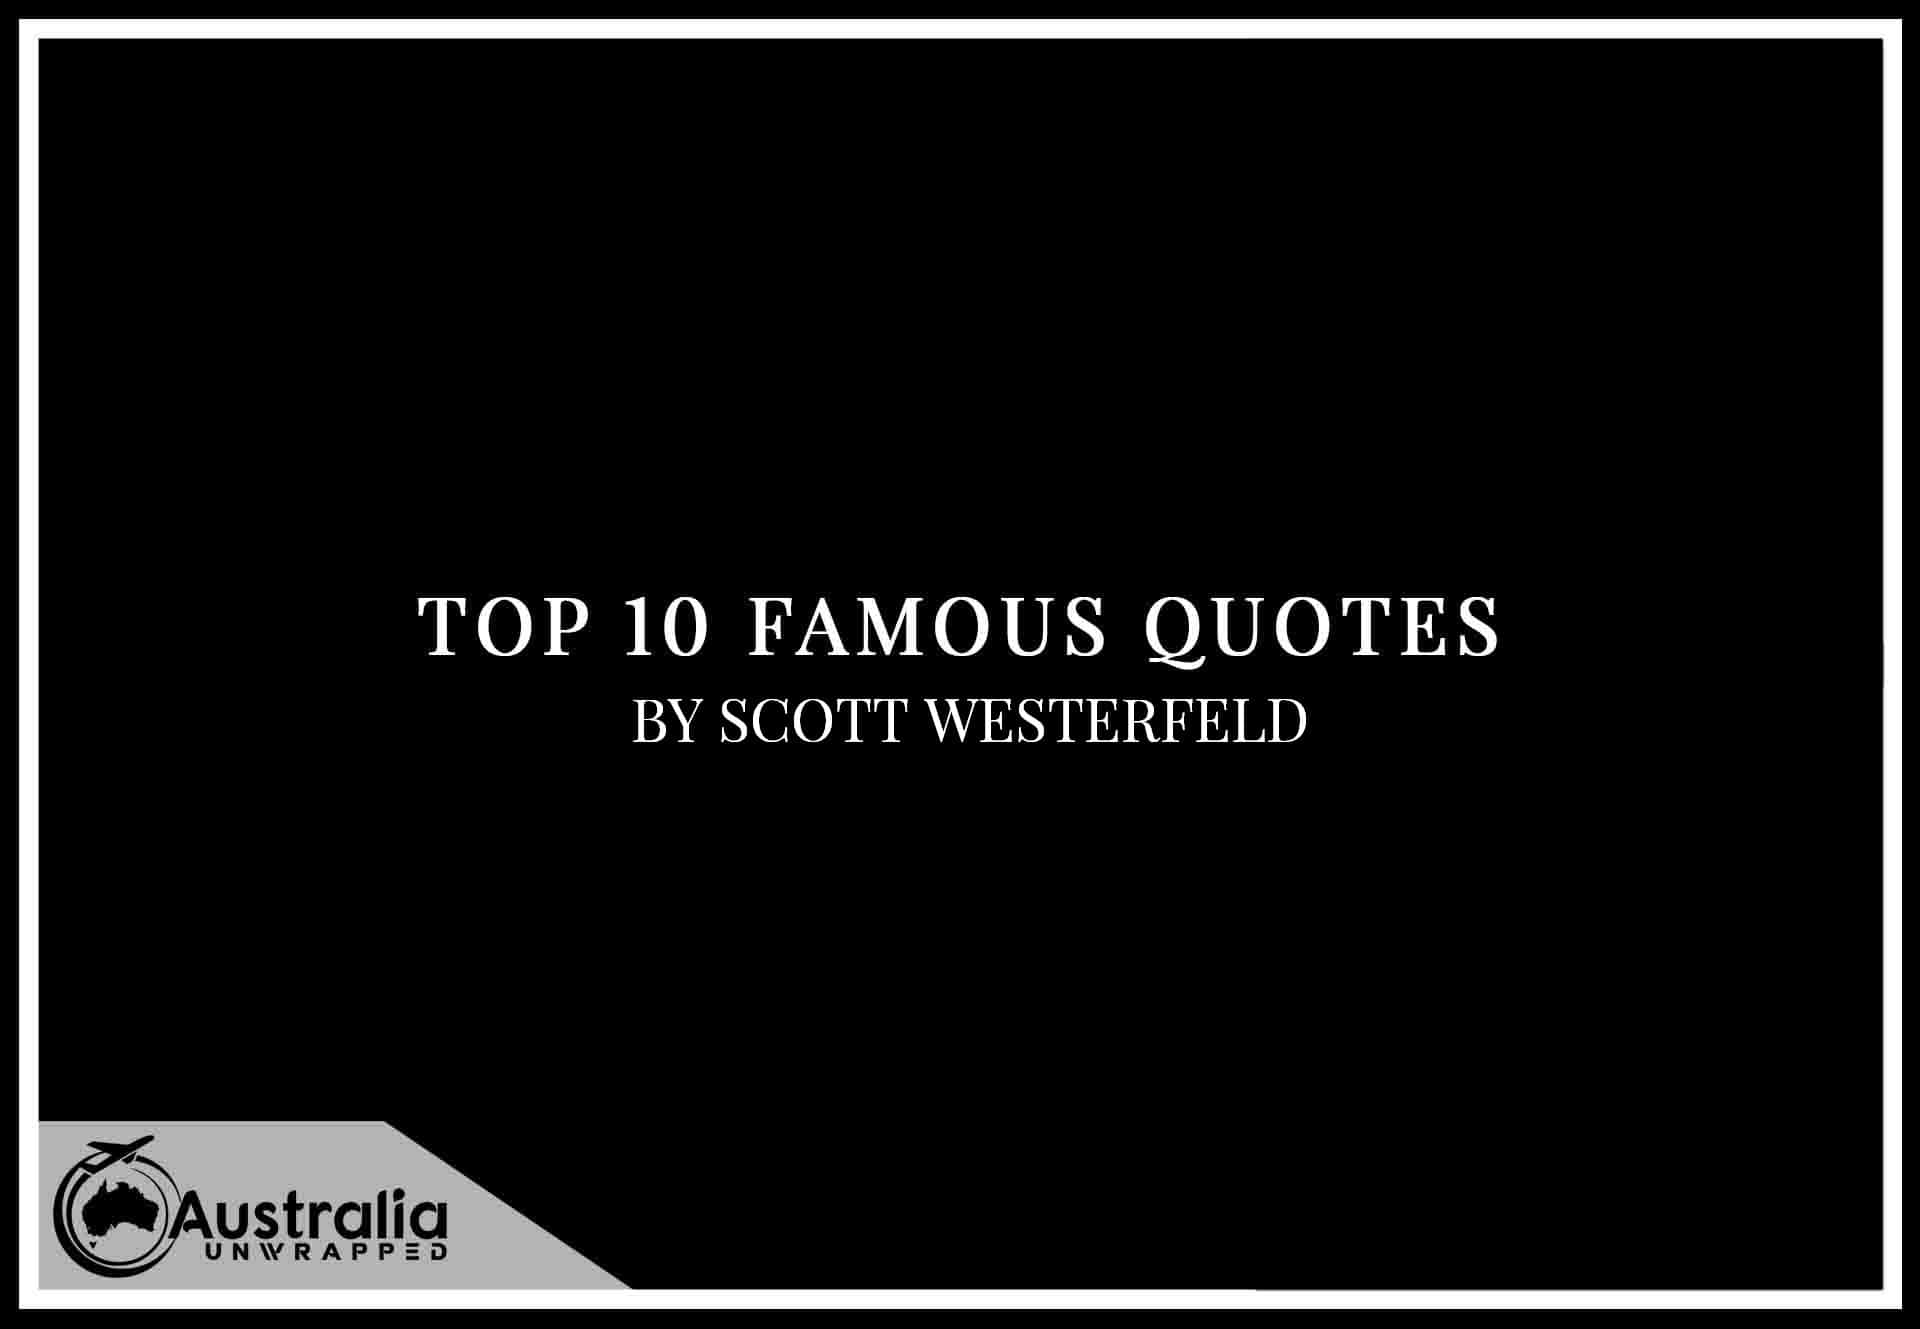 Top 10 Famous Quotes by Author Scott Westerfeld